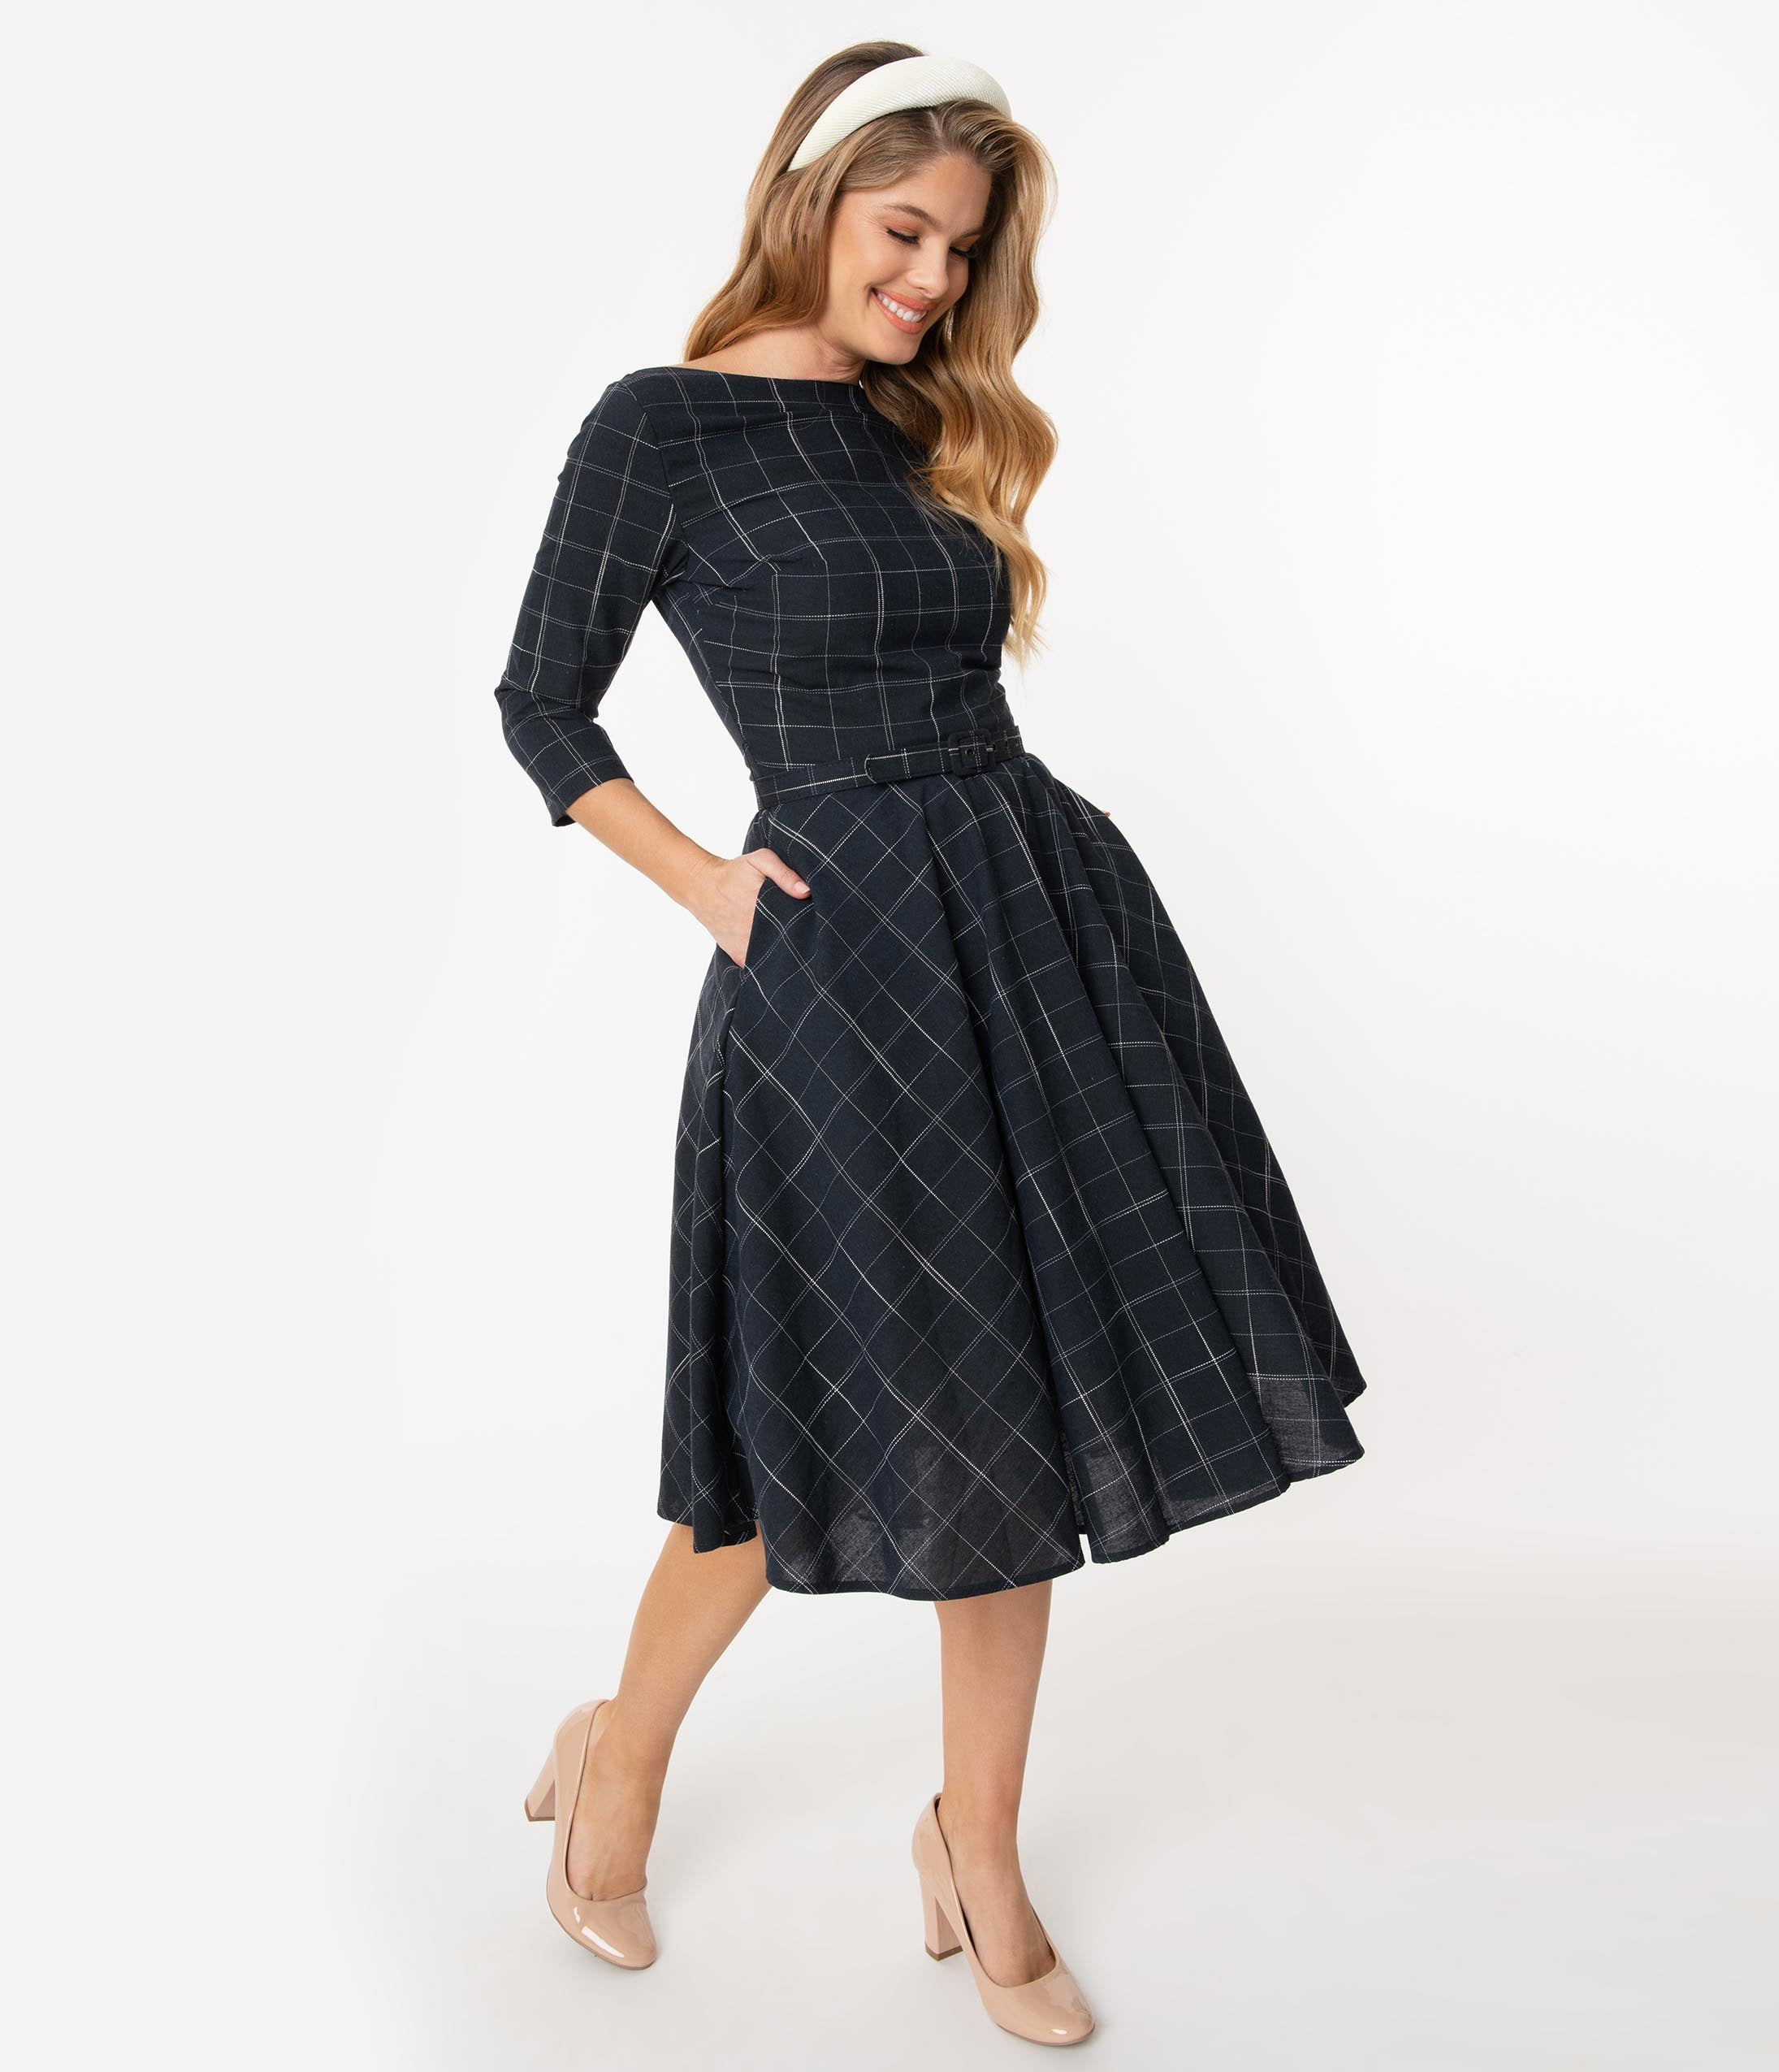 60s Dresses | 1960s Dresses Mod, Mini, Hippie Unique Vintage 1950S Navy Windowpane Devon Swing Dress $98.00 AT vintagedancer.com